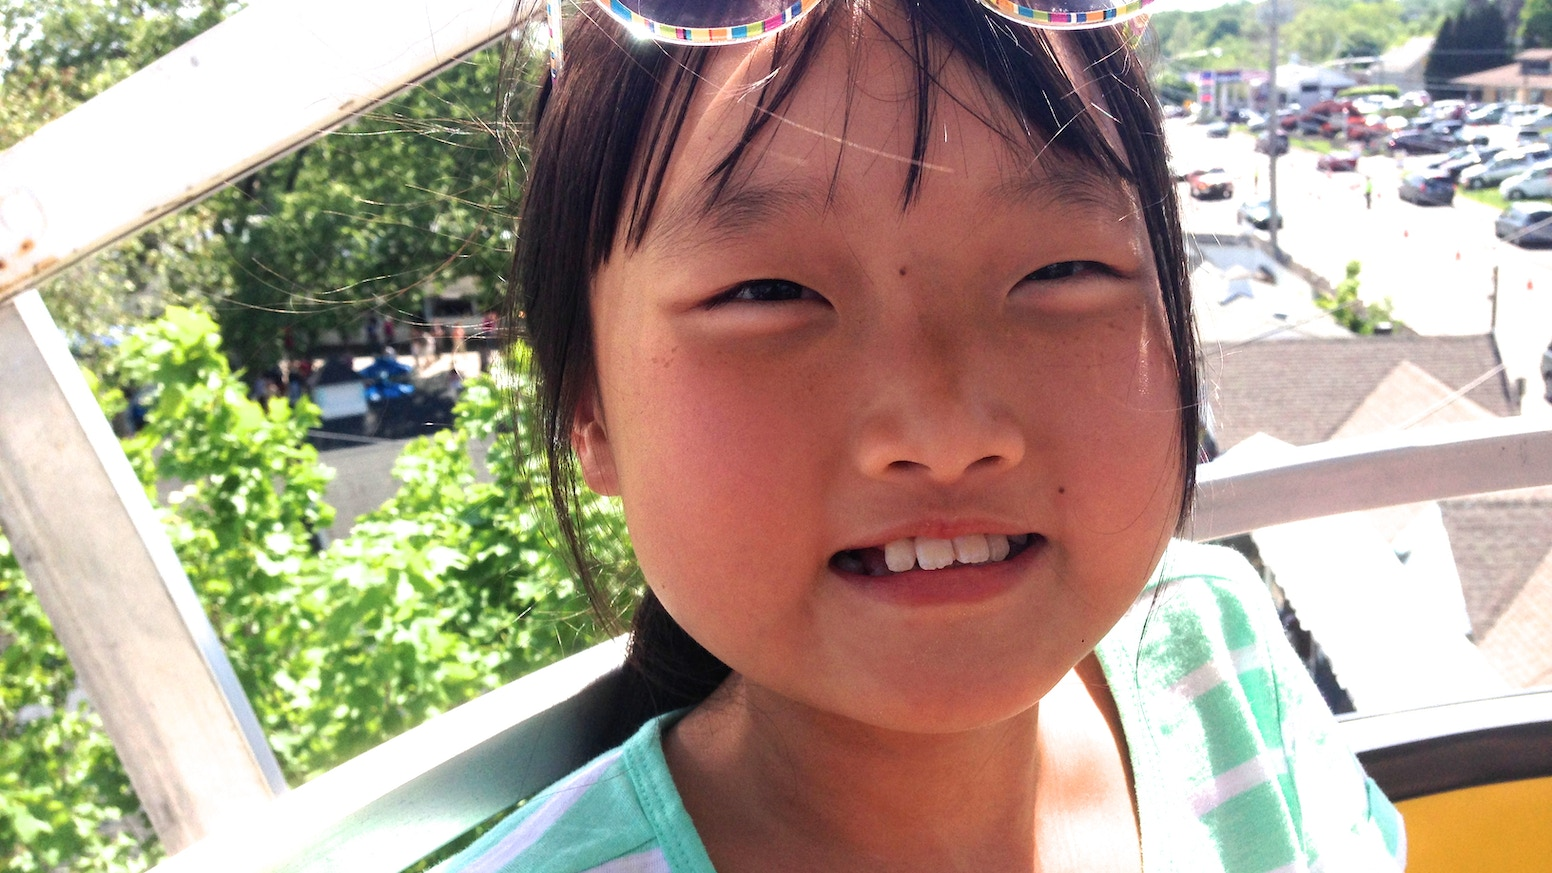 11-year-old Melissa will write and publish a chapter book with her sister about a girl with muscular dystrophy who loves to sing.